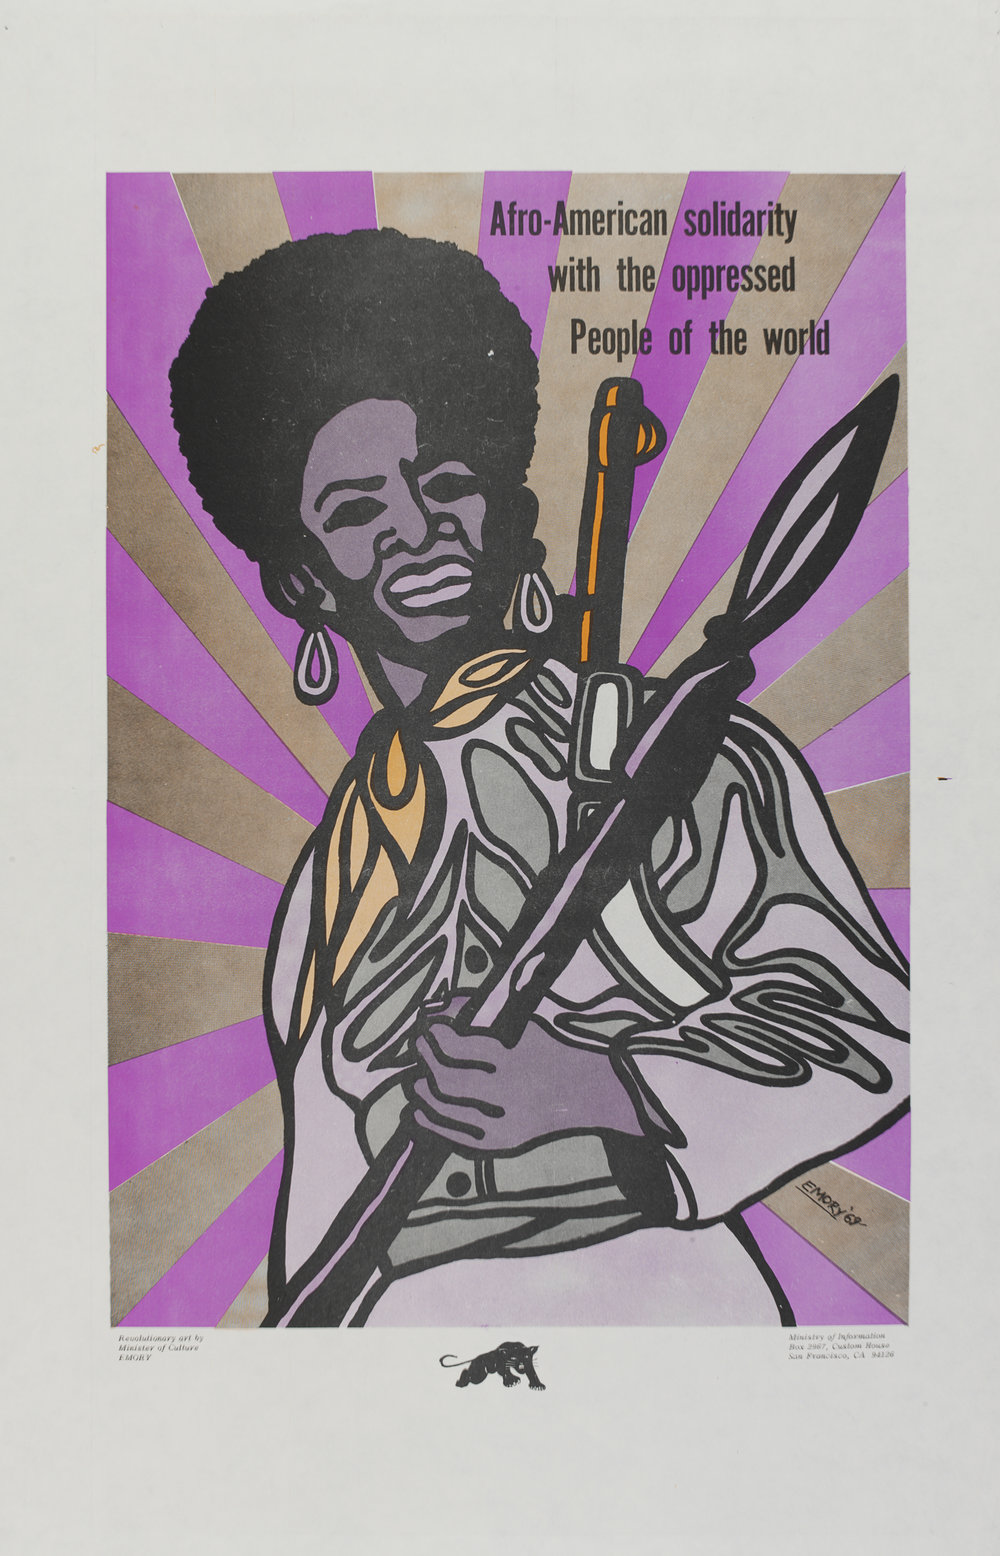 Afro-American Solidarity poster by Emory Douglas, 1969, Photo (c) Victoria and Albert Museum, London